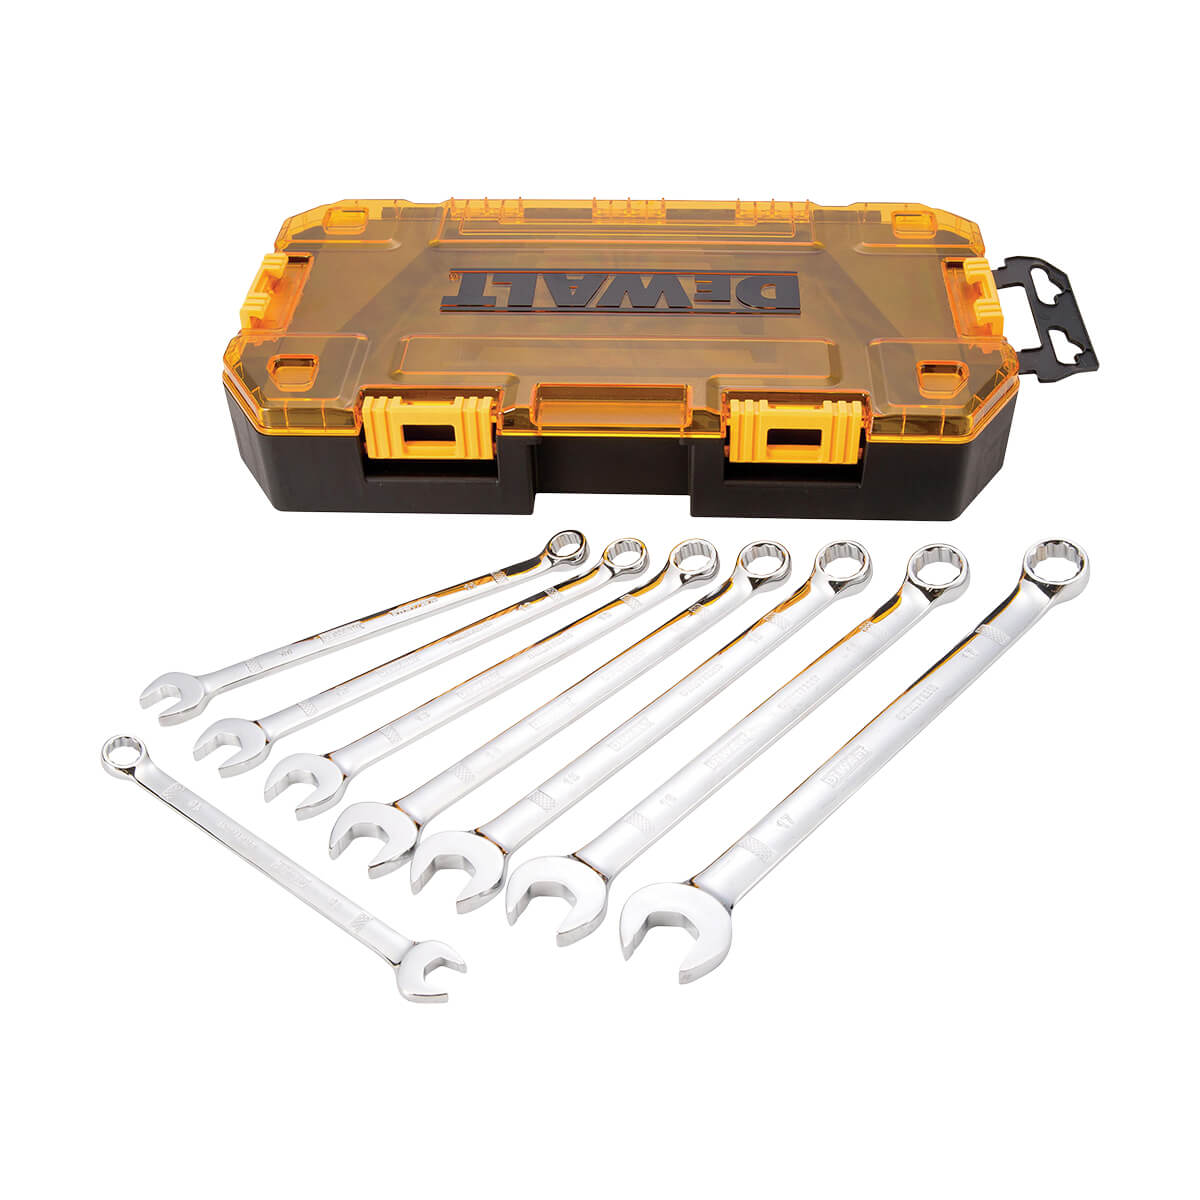 Combination Wrench Set - Metric - 8 Piece